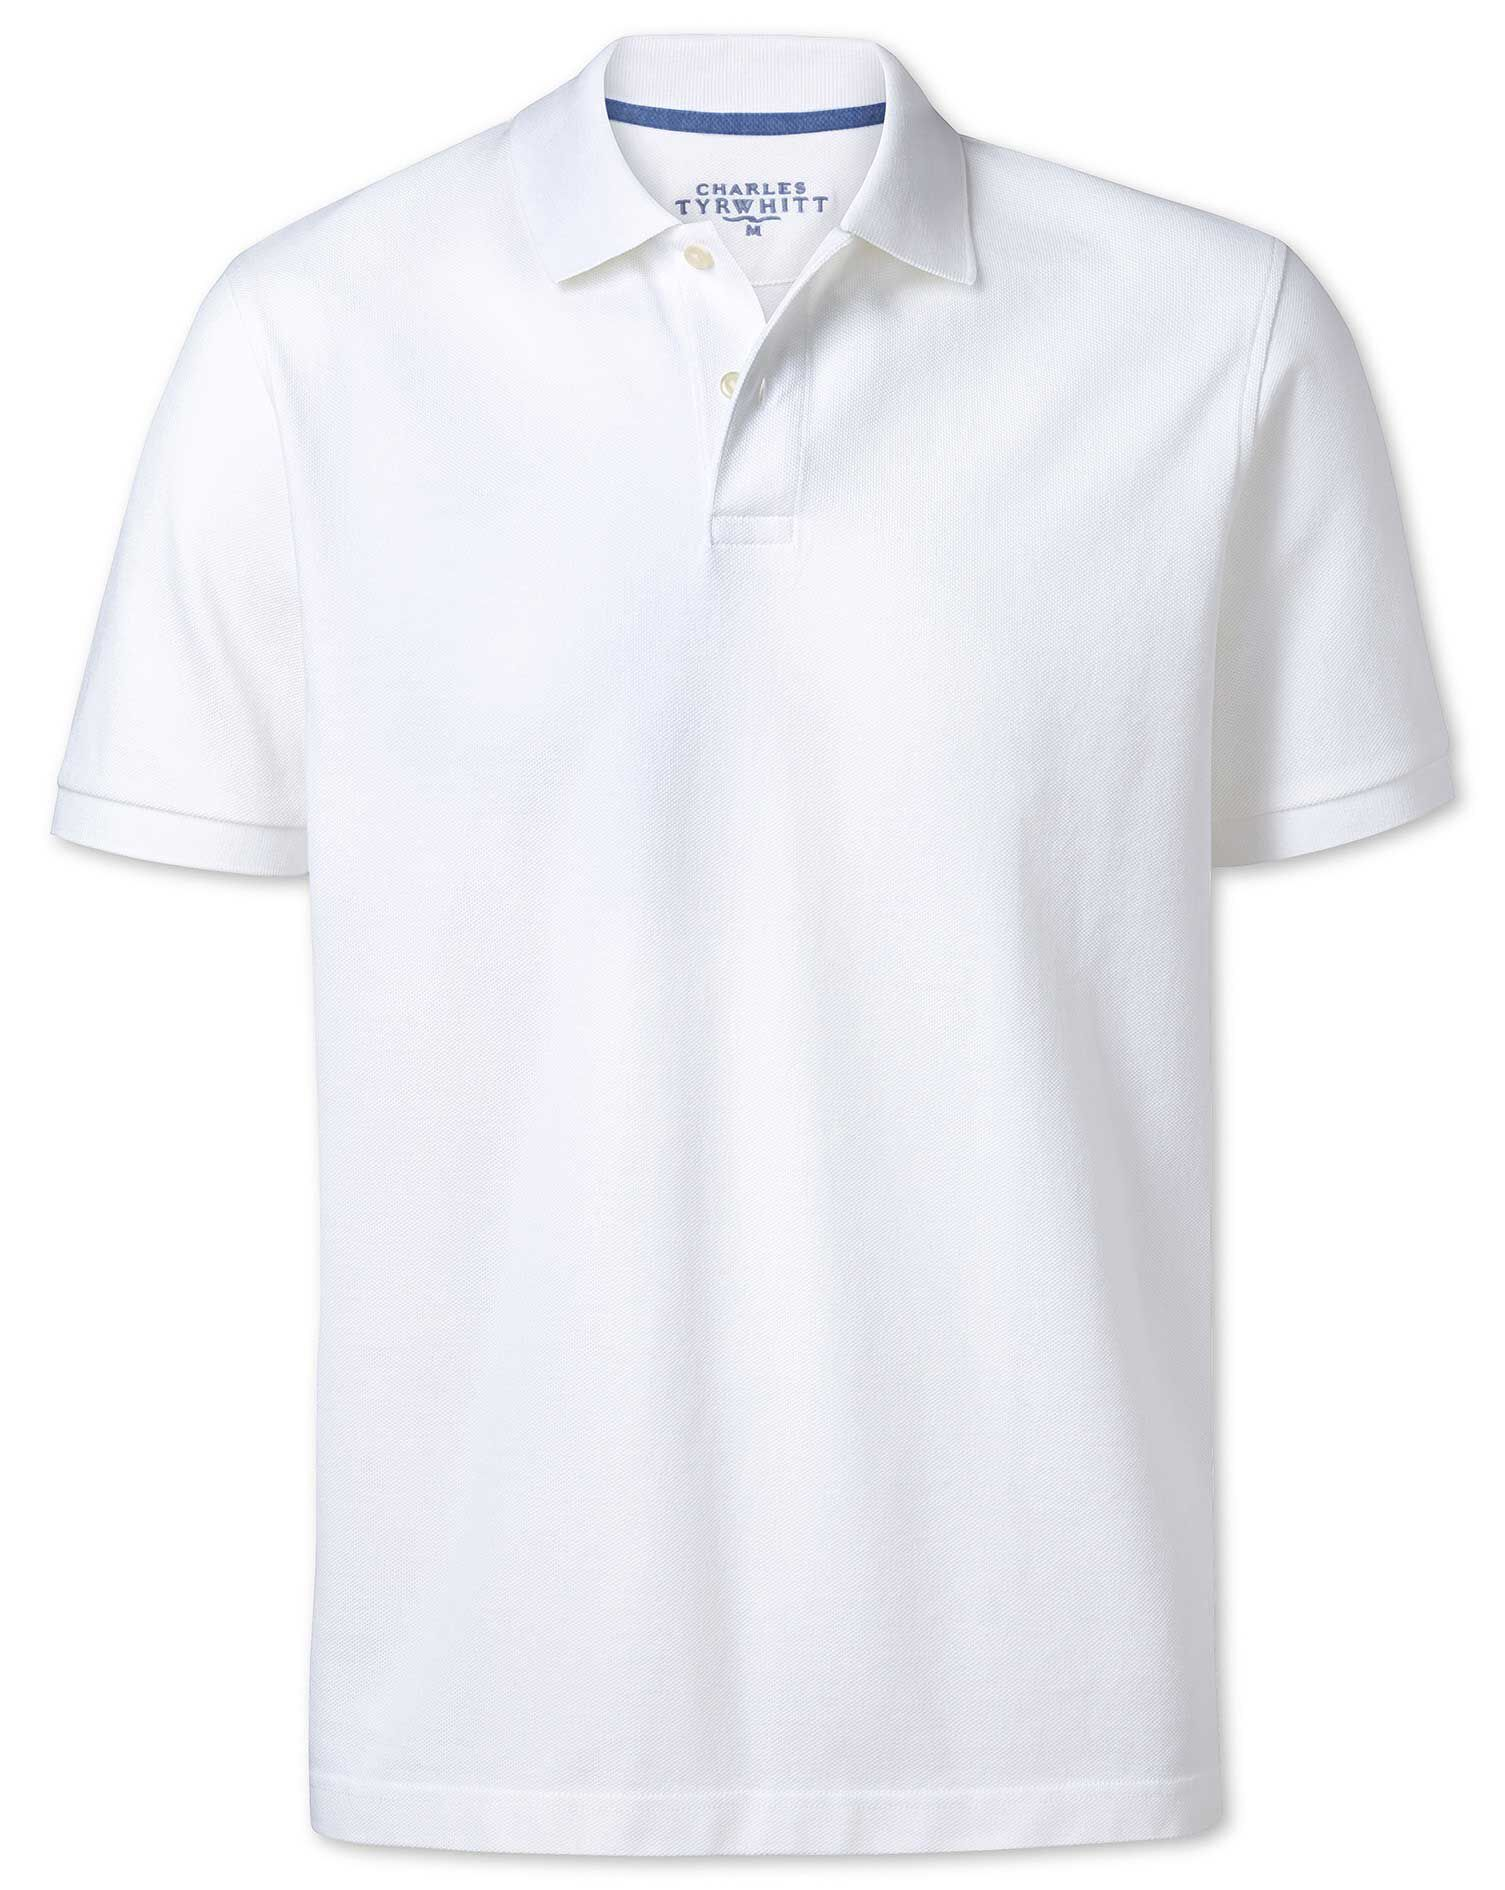 White Pique Cotton Polo Size Large by Charles Tyrwhitt